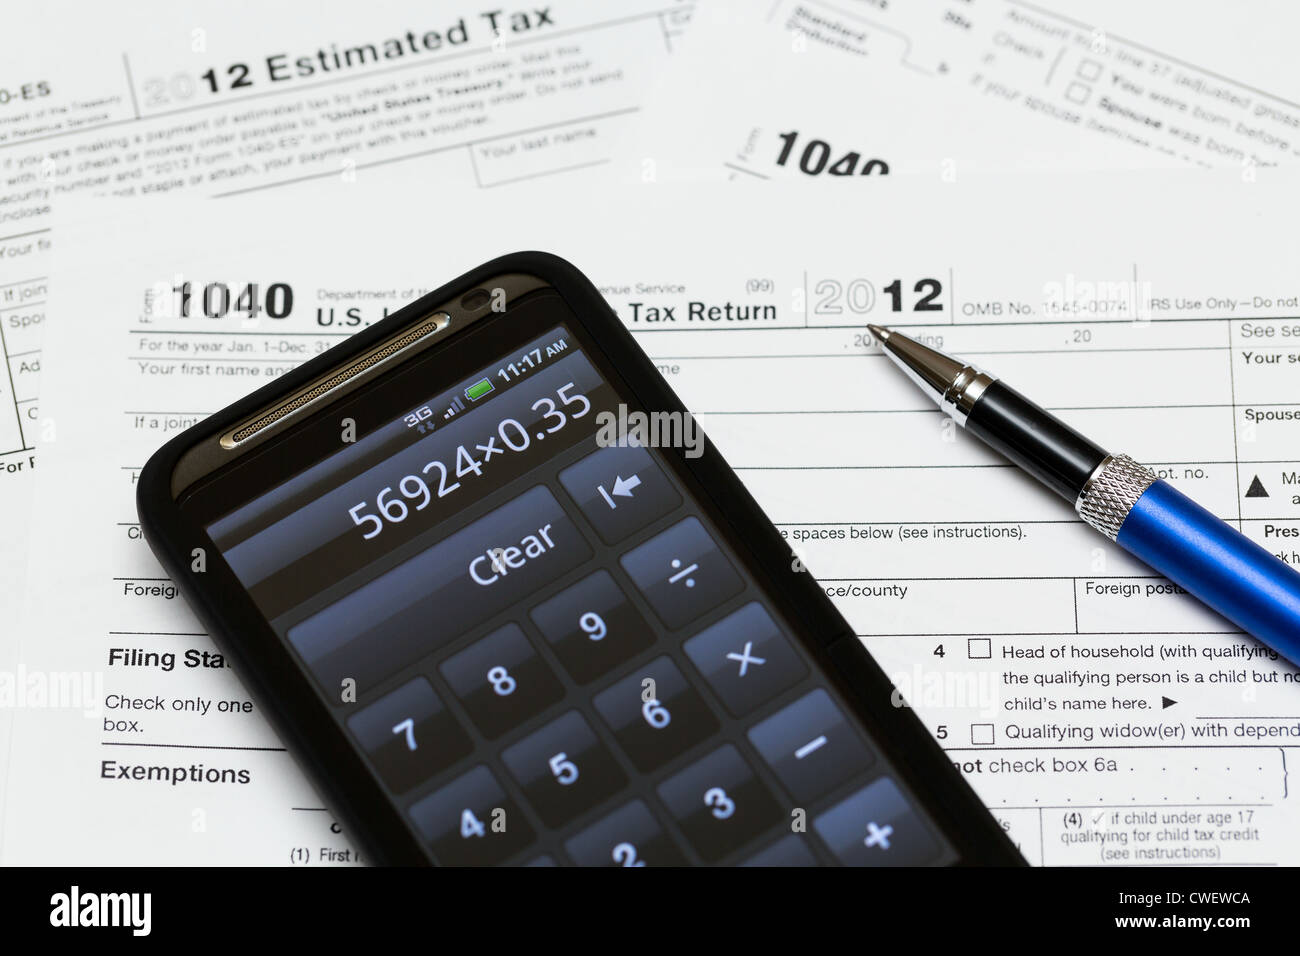 Tax form 1040 for tax year 2012 for us individual tax return with tax form 1040 for tax year 2012 for us individual tax return with smartphone calculator falaconquin